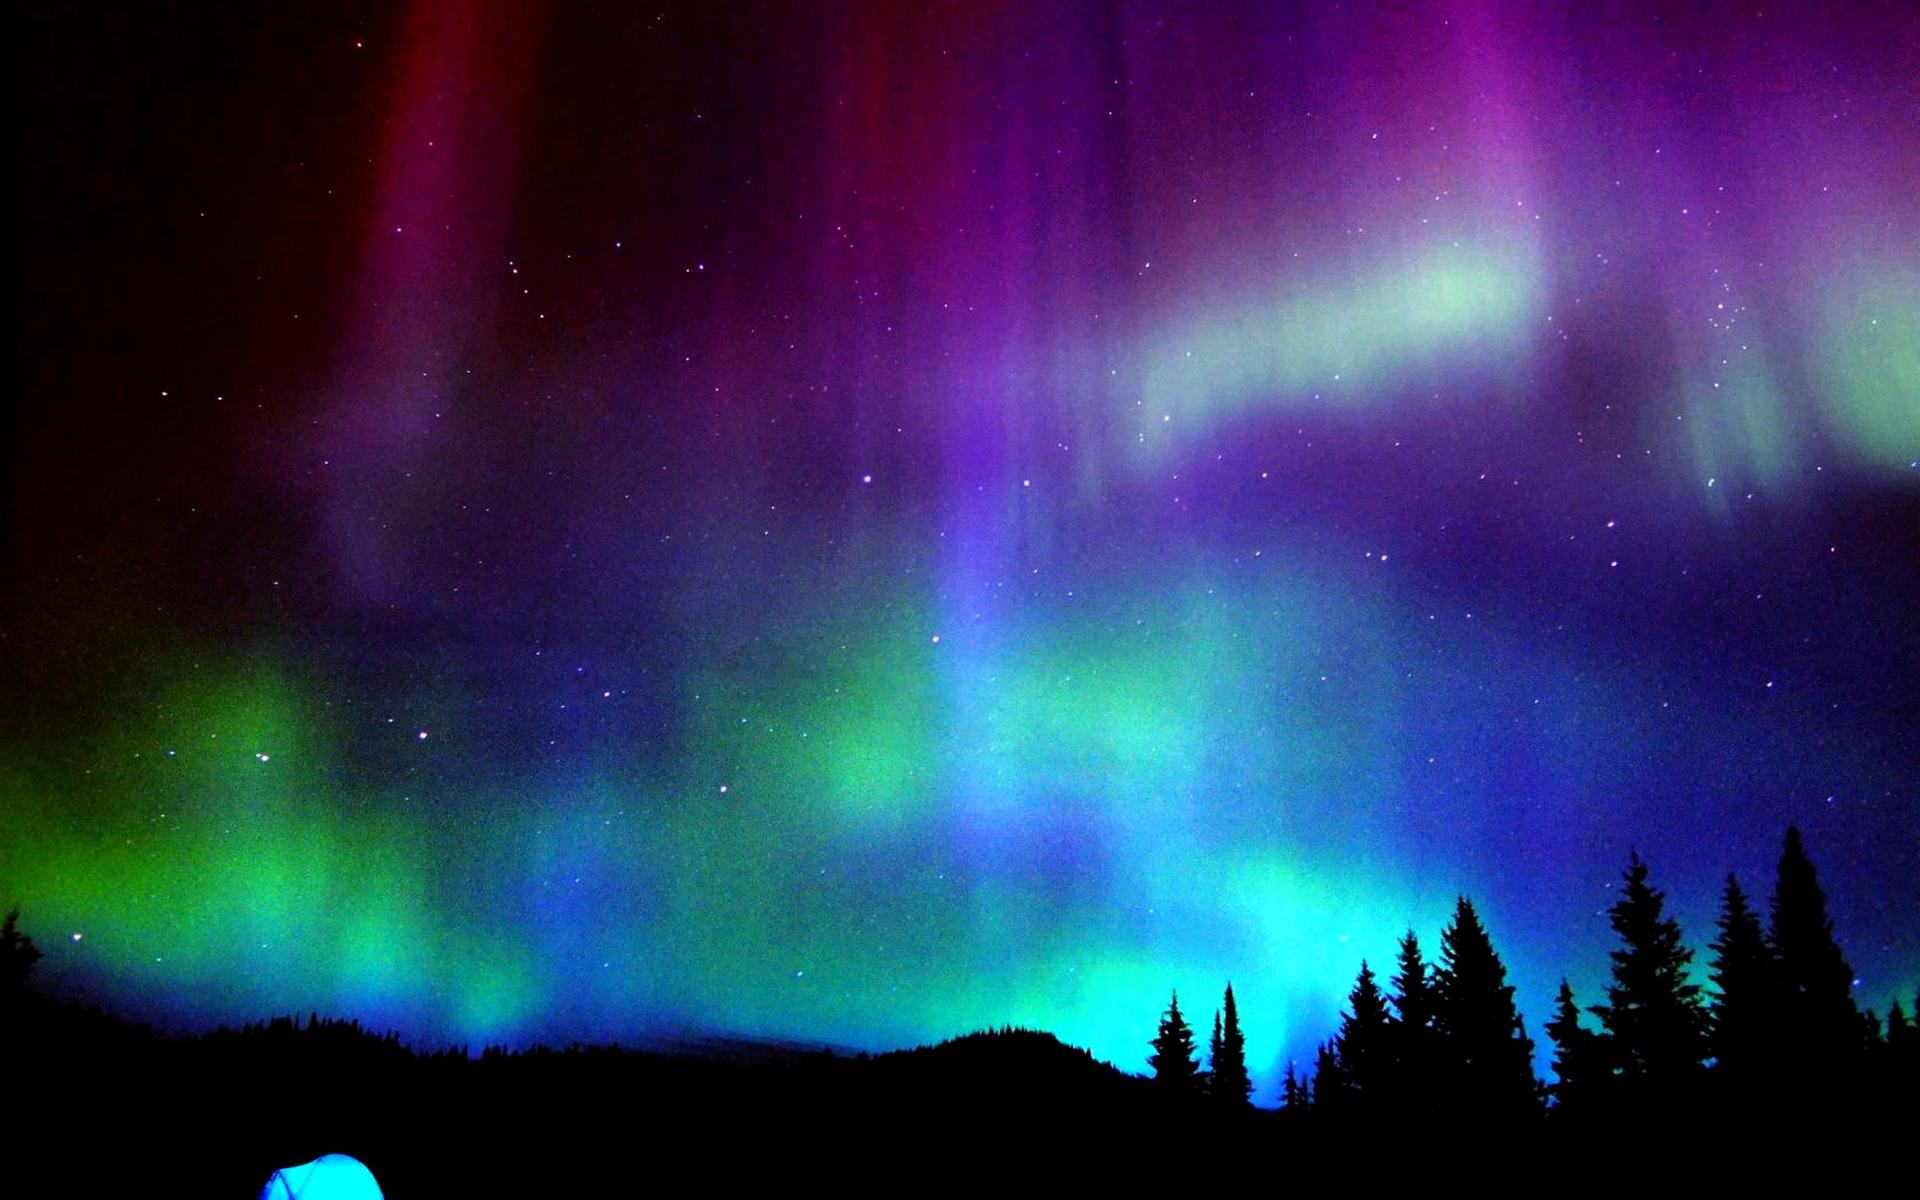 Celebrating the Northern Lights of Aurora Borealis | From Behind the ...